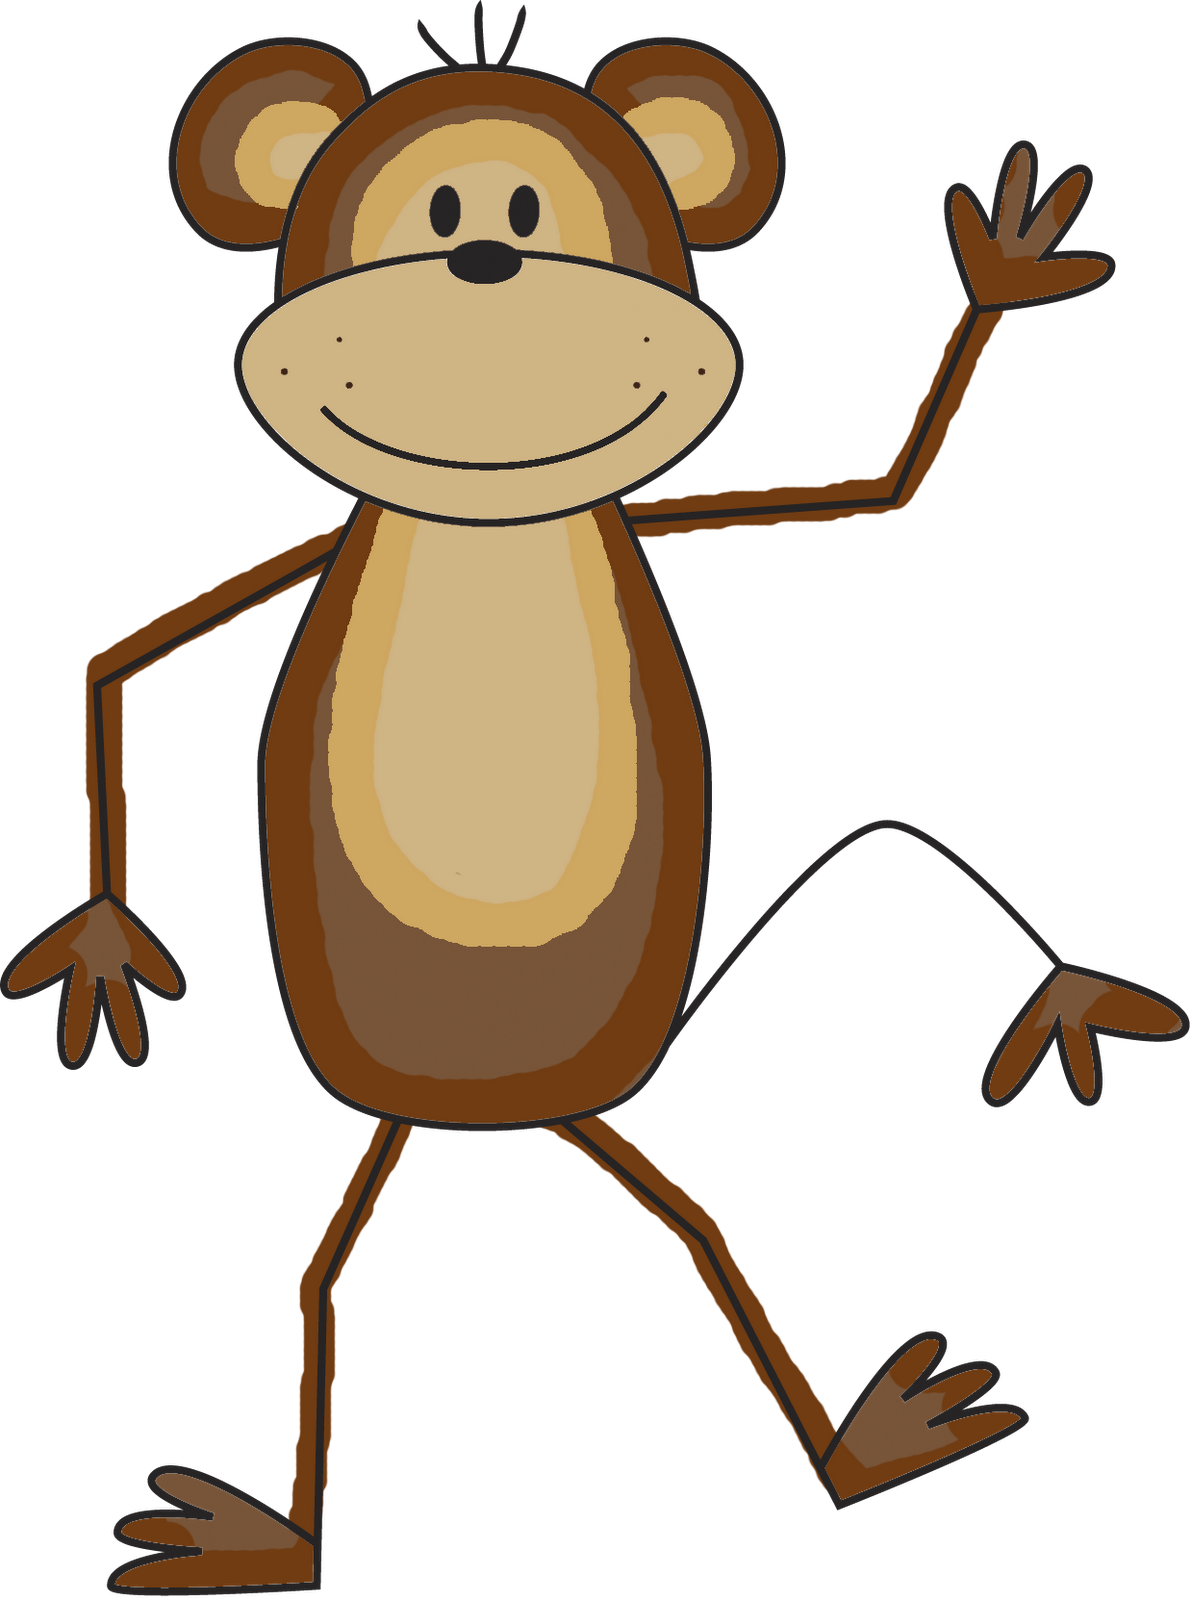 Monkey clipart png. Best free icons and